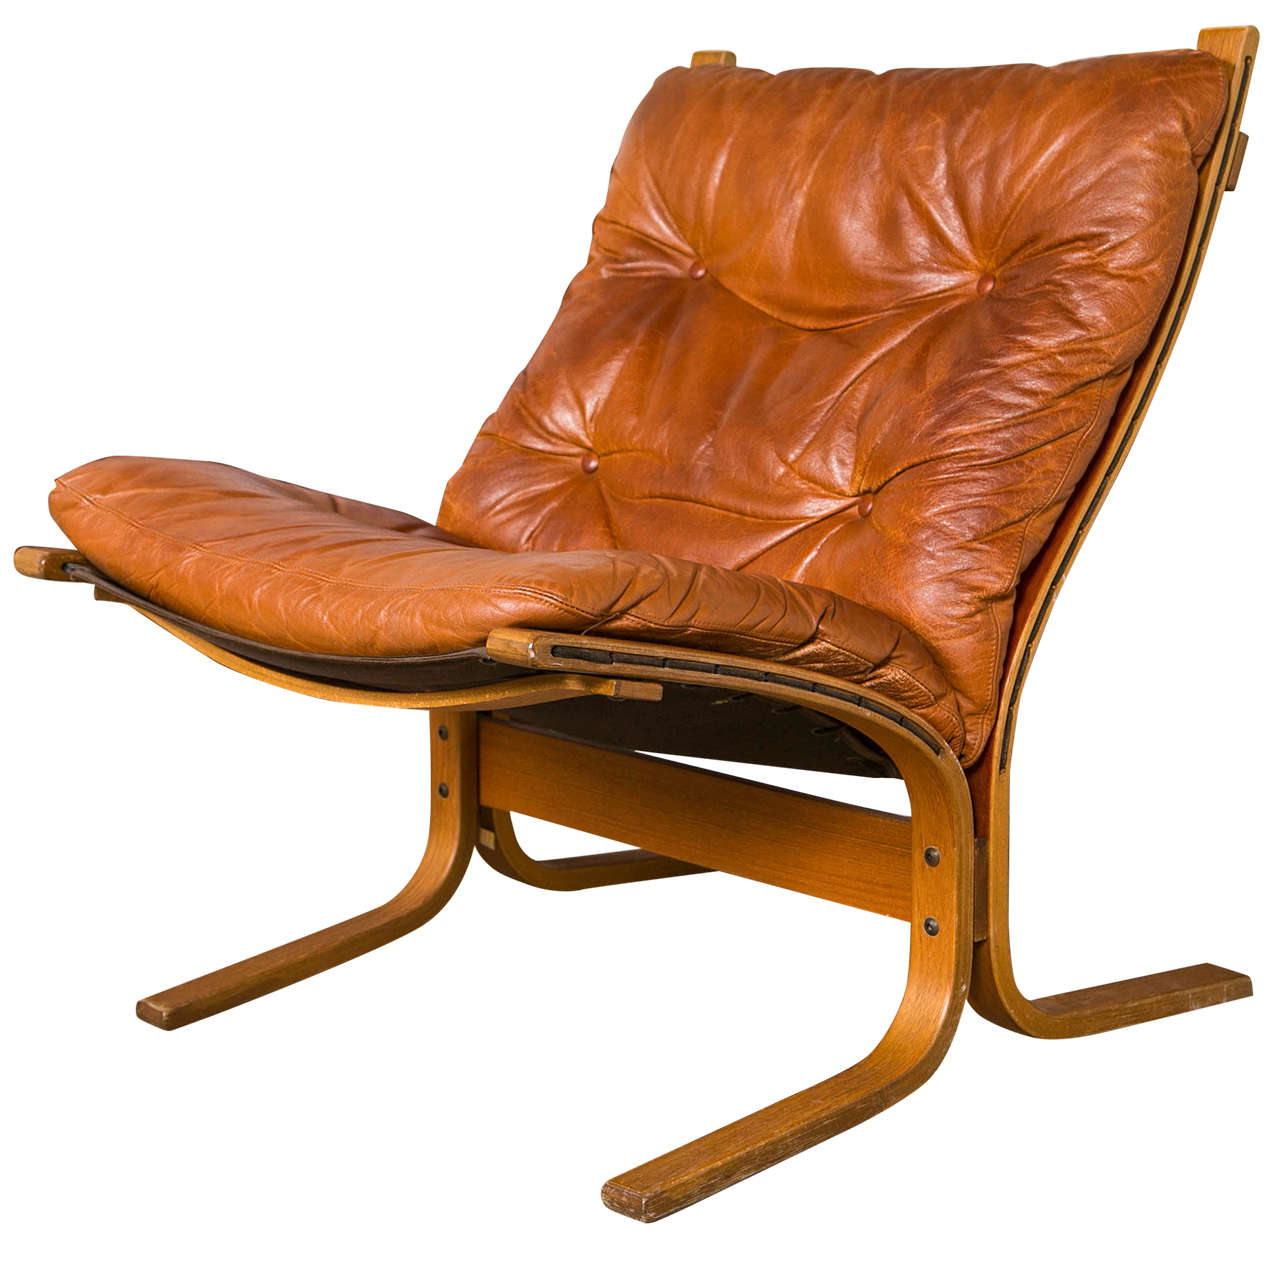 safari high chair oversized dining room covers ingmar relling leather siesta at 1stdibs